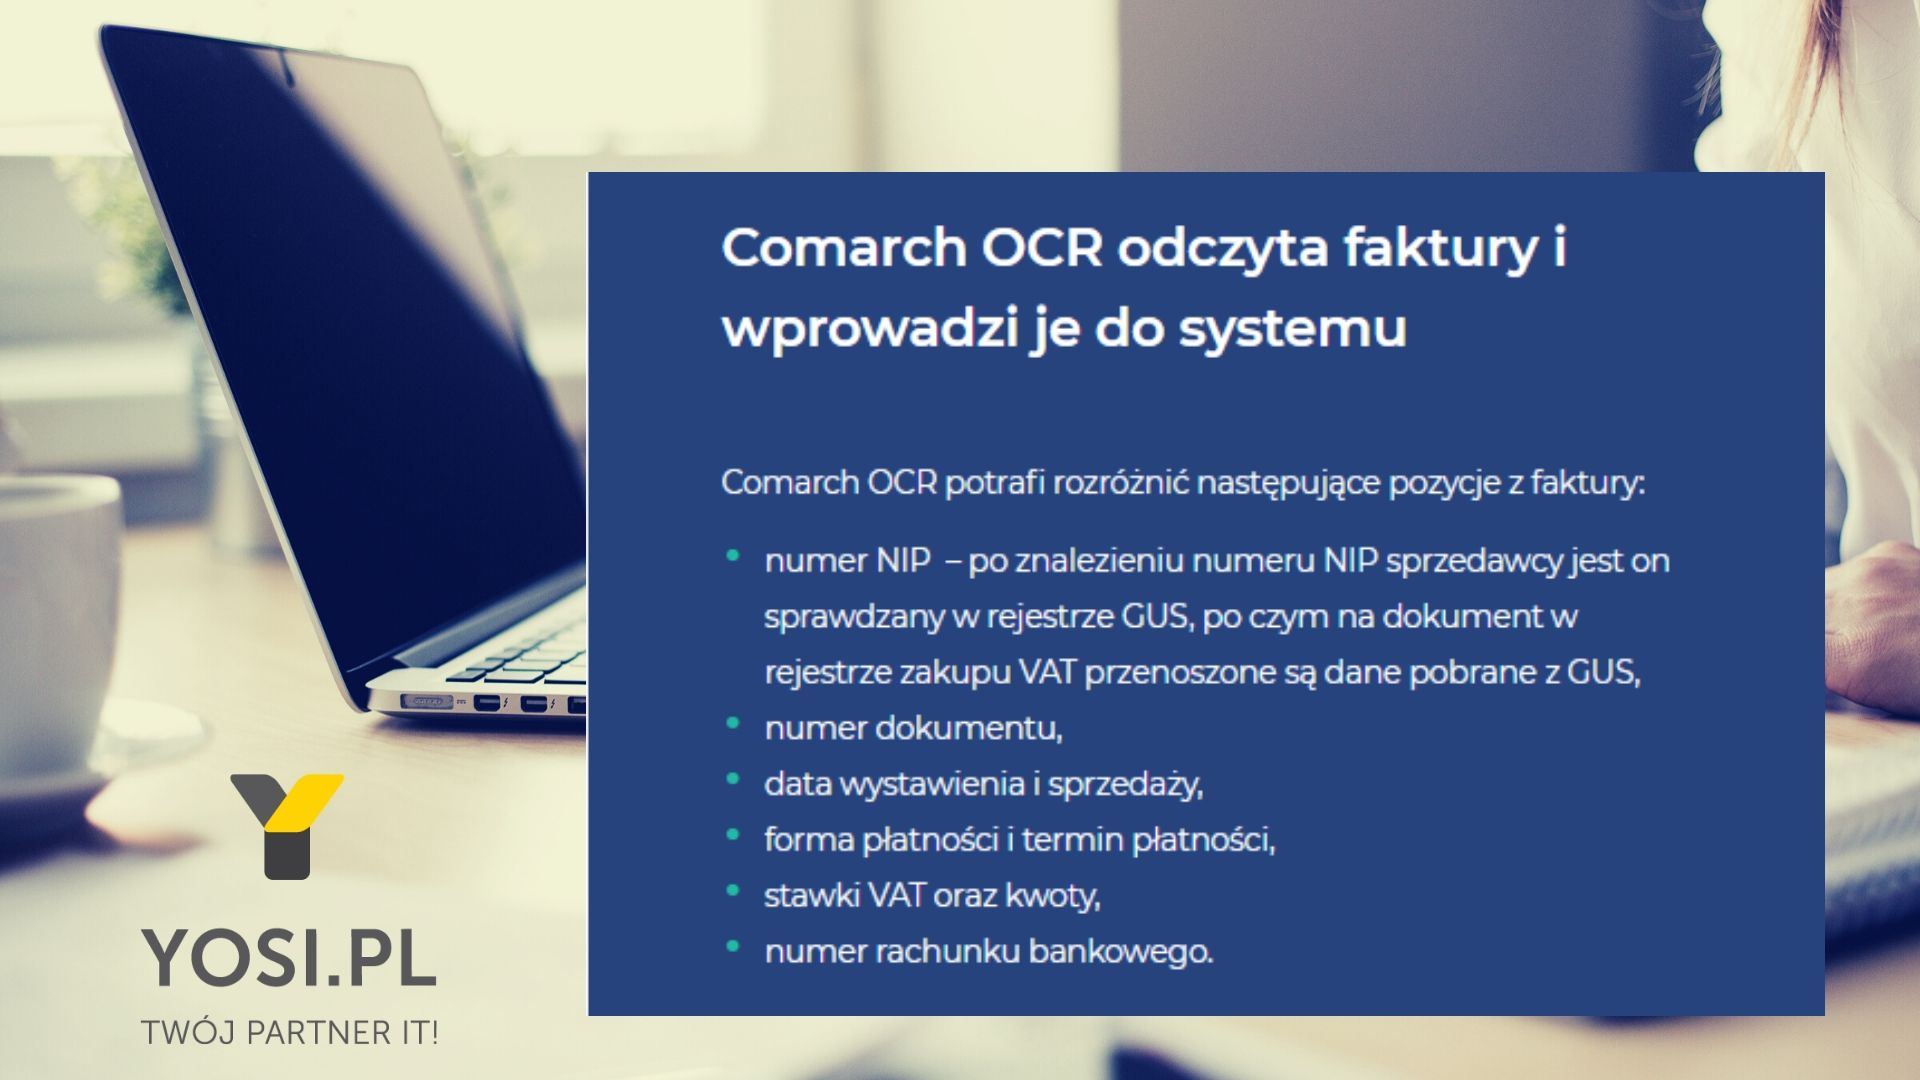 Comarch OCR - YOSI.PL